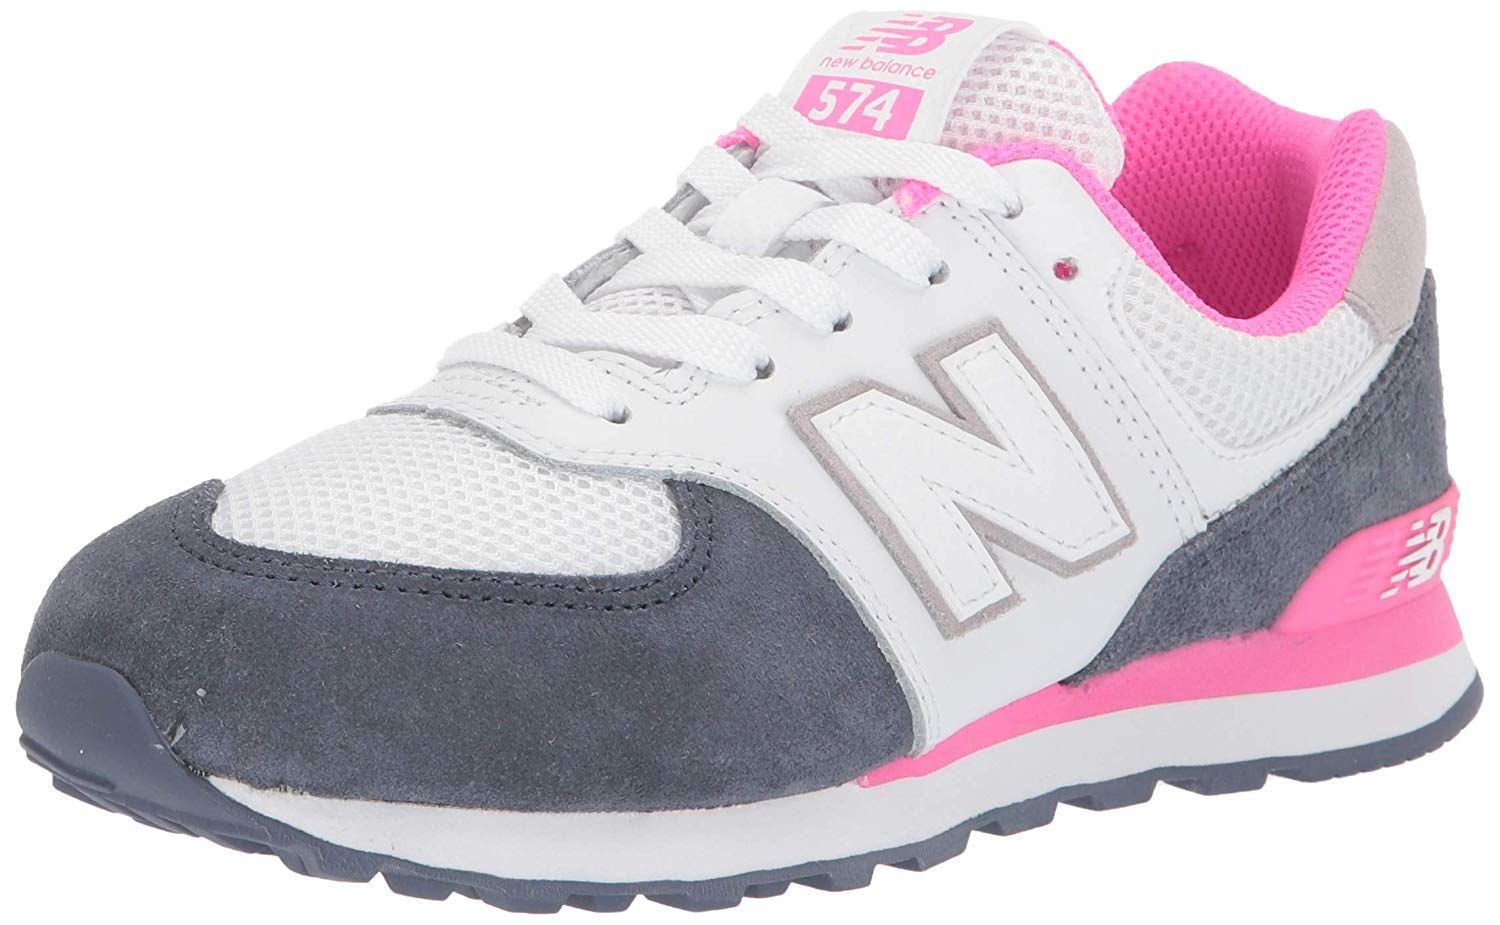 New Balance Kids' Iconic 574 V1 Sneaker Check out the